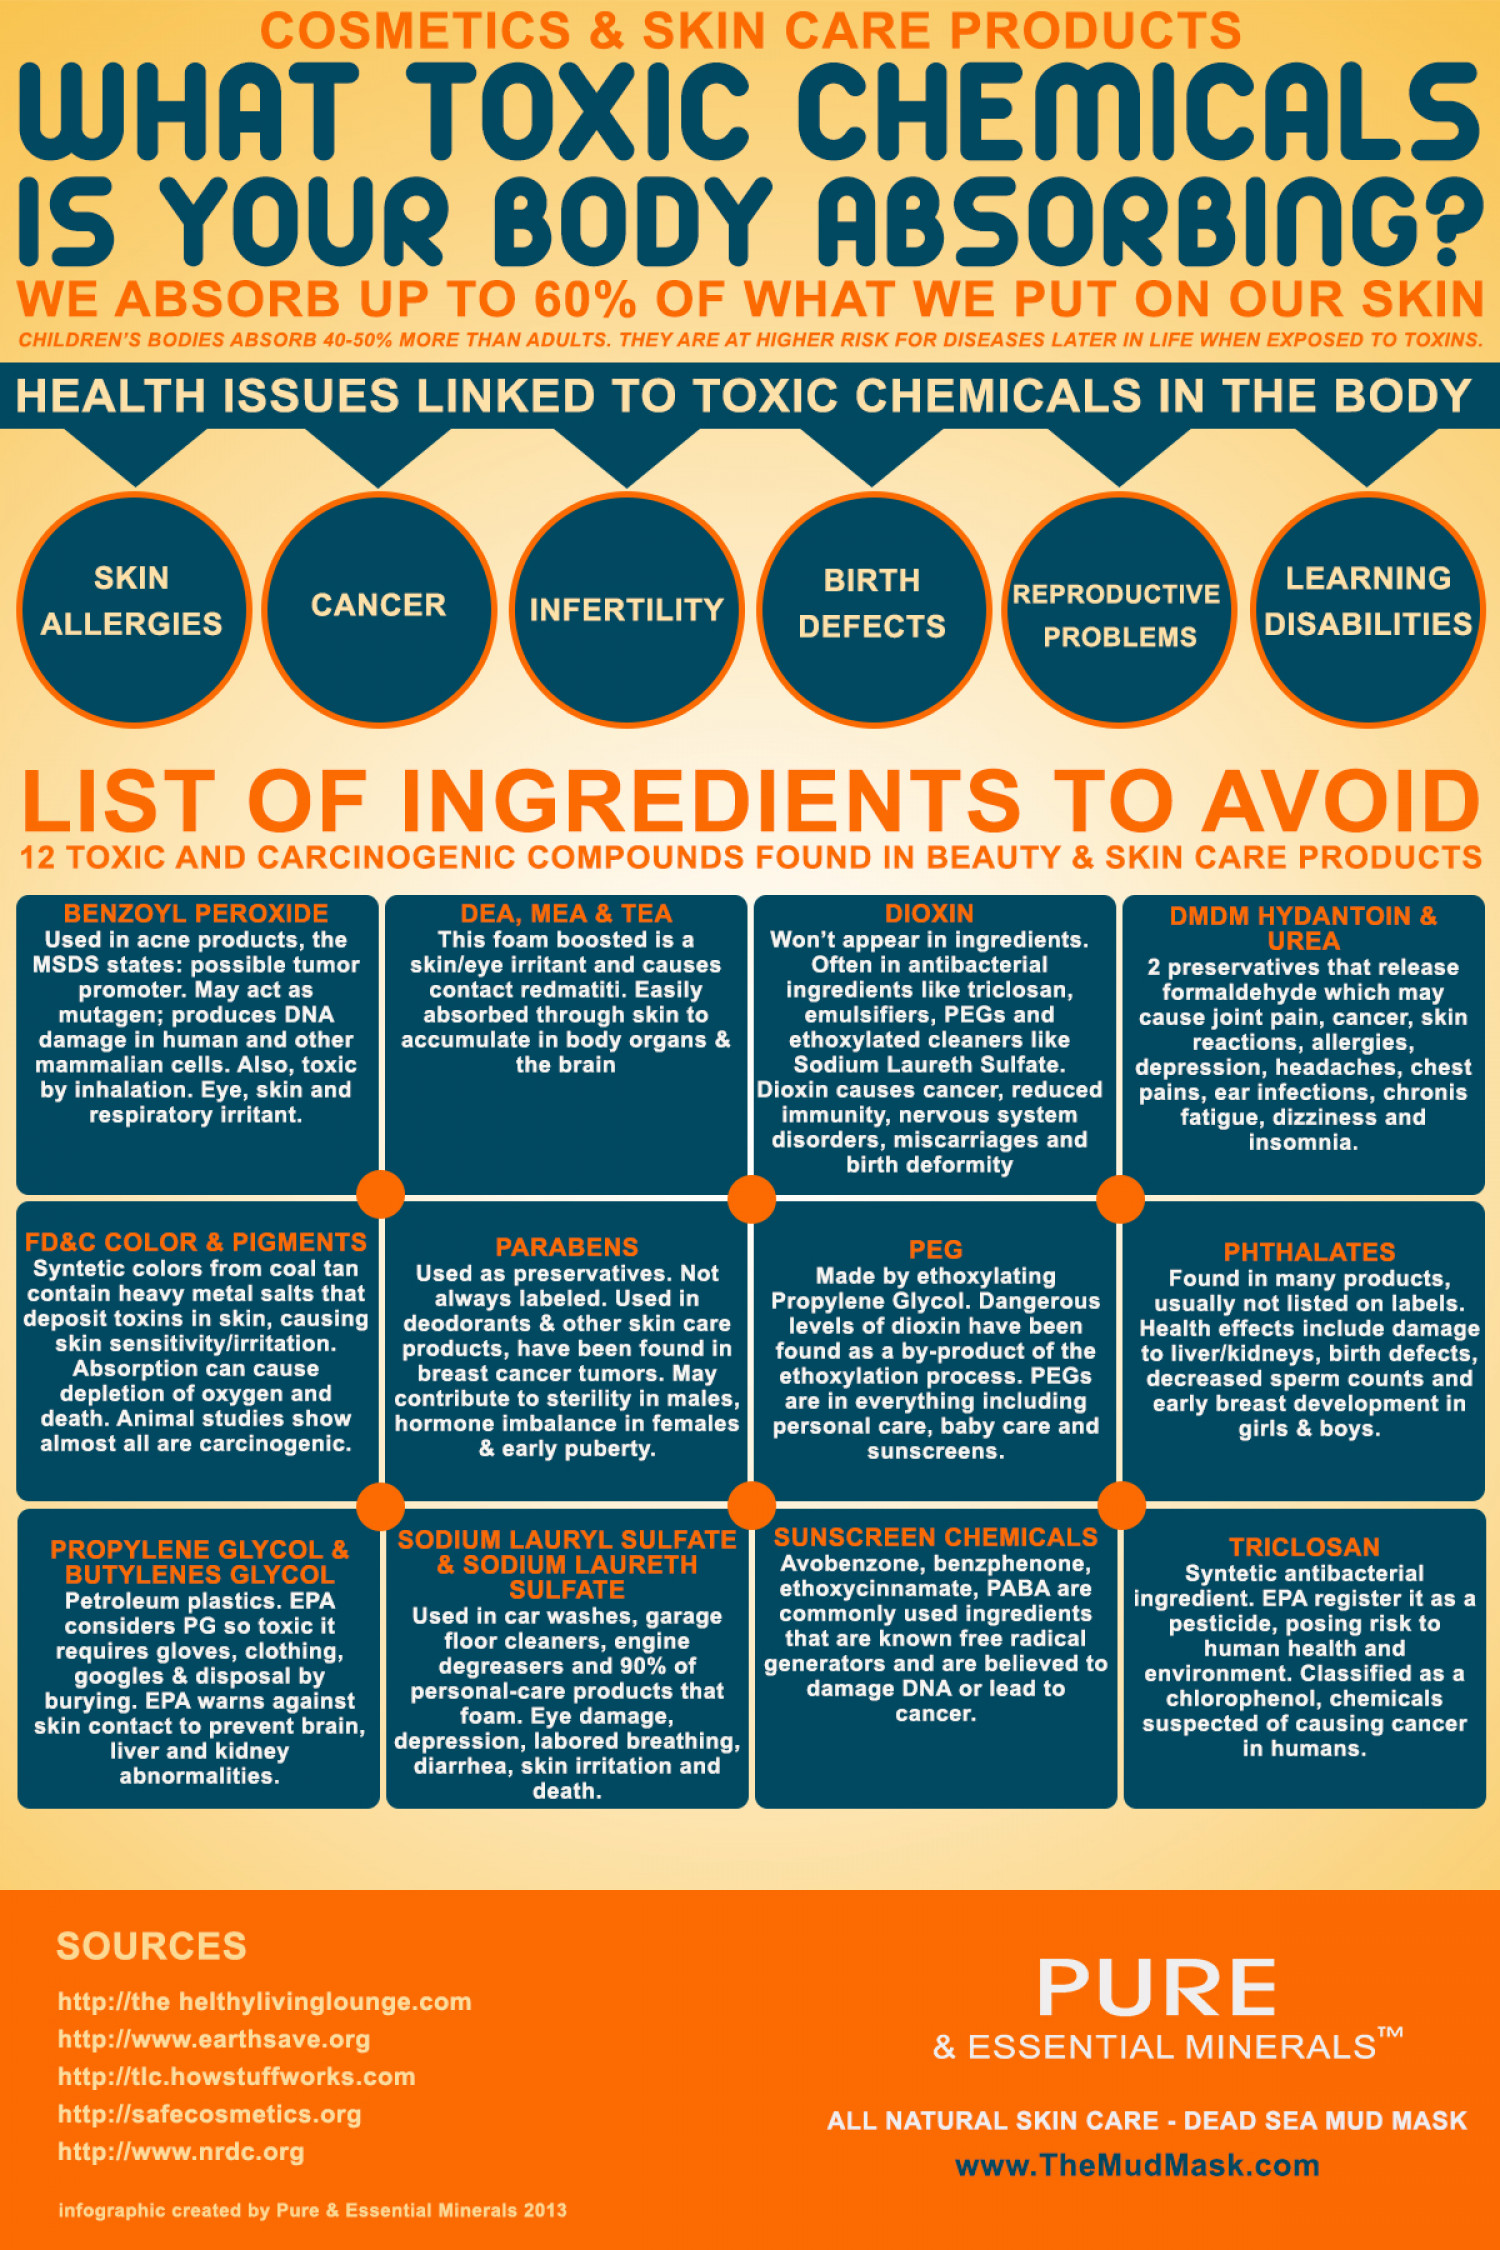 Toxic Chemicals in Cosmetics and Skin Care Products Infographic